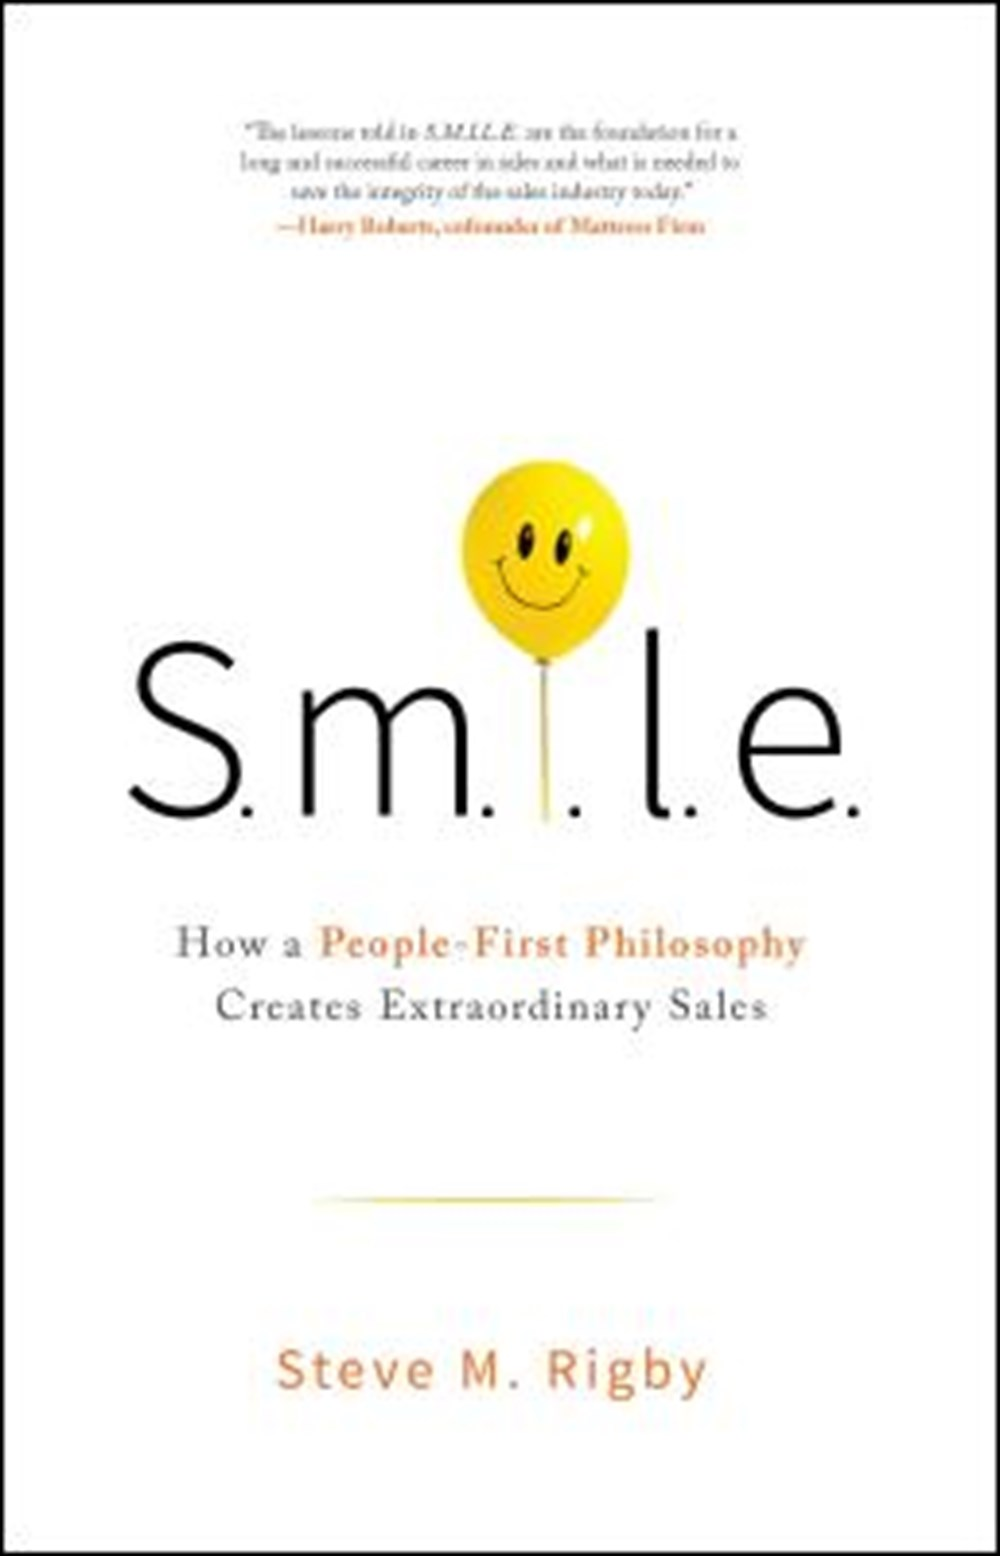 S.M.I.L.E How a People-First Philosophy Creates Extraordinary Sales